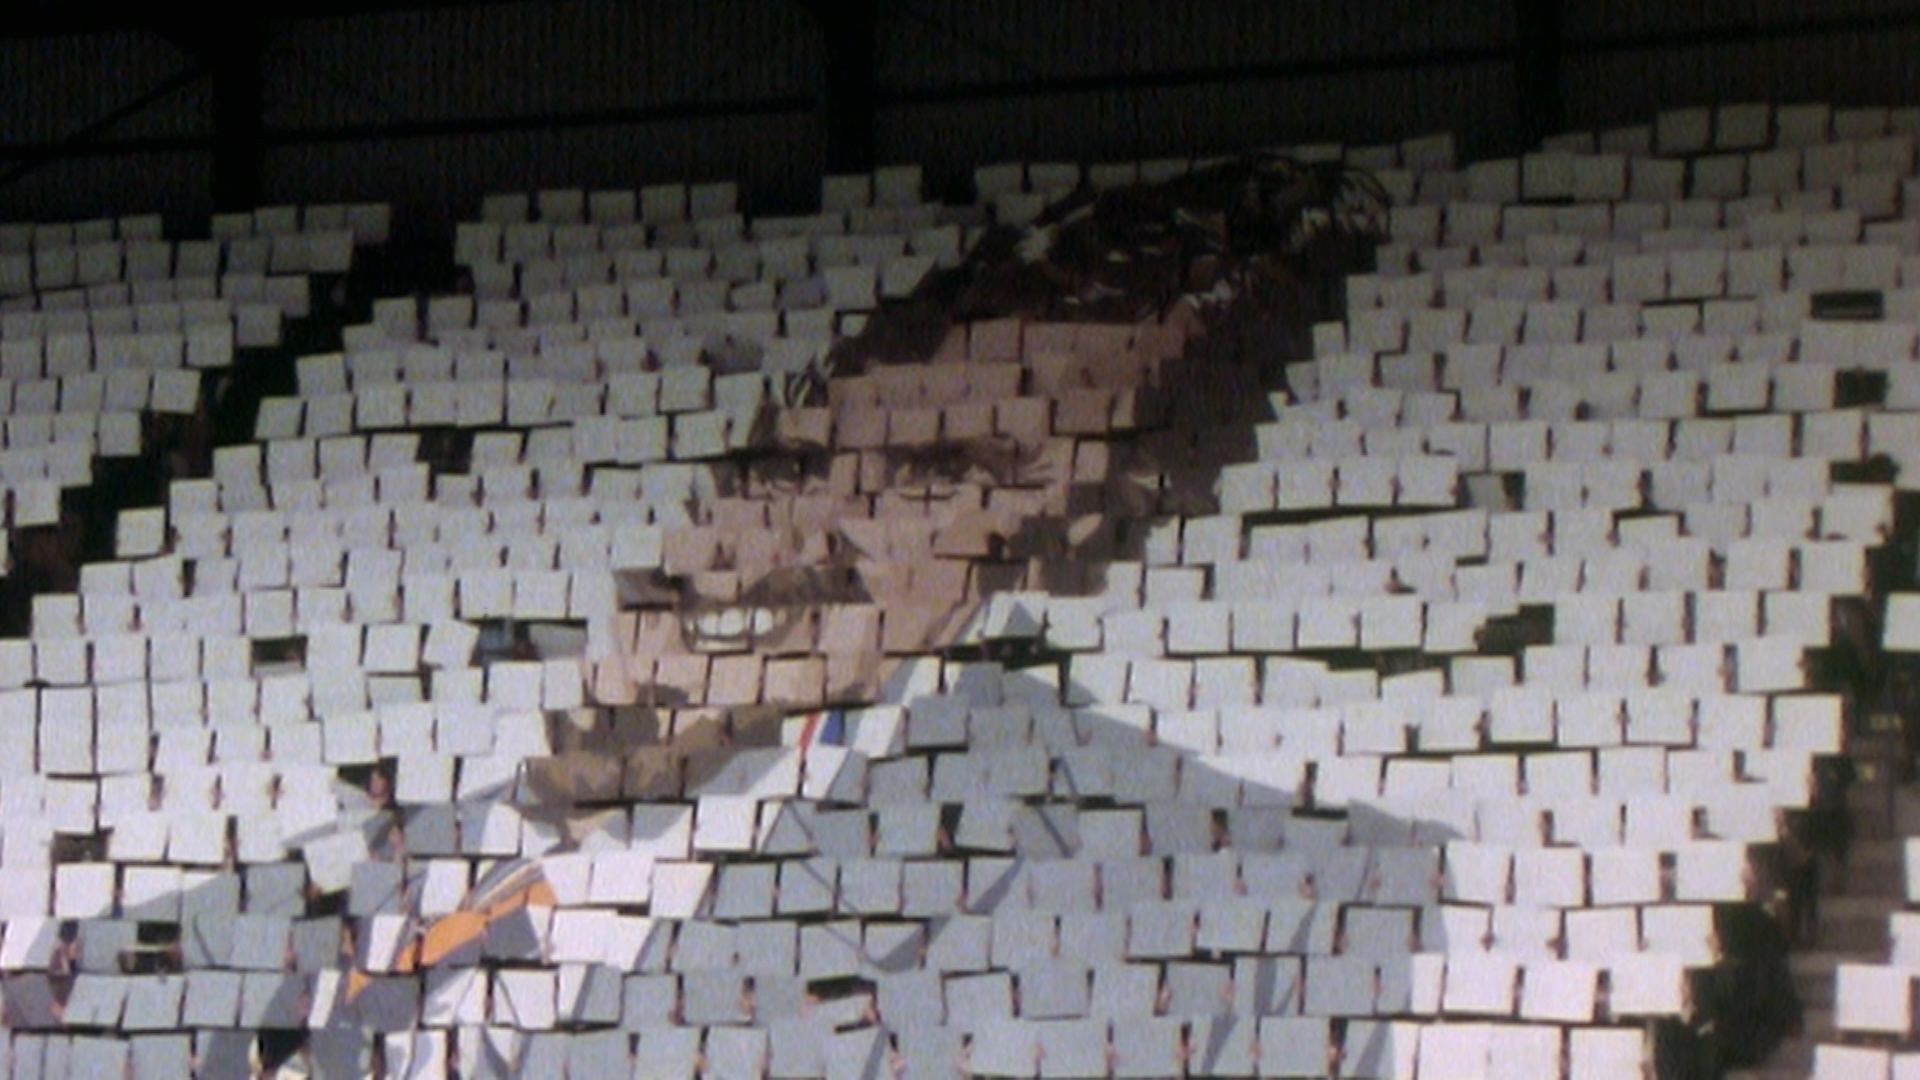 Jimmy Hill: A Man For All The Seasons - Football fans hold up image of Jimmy at game